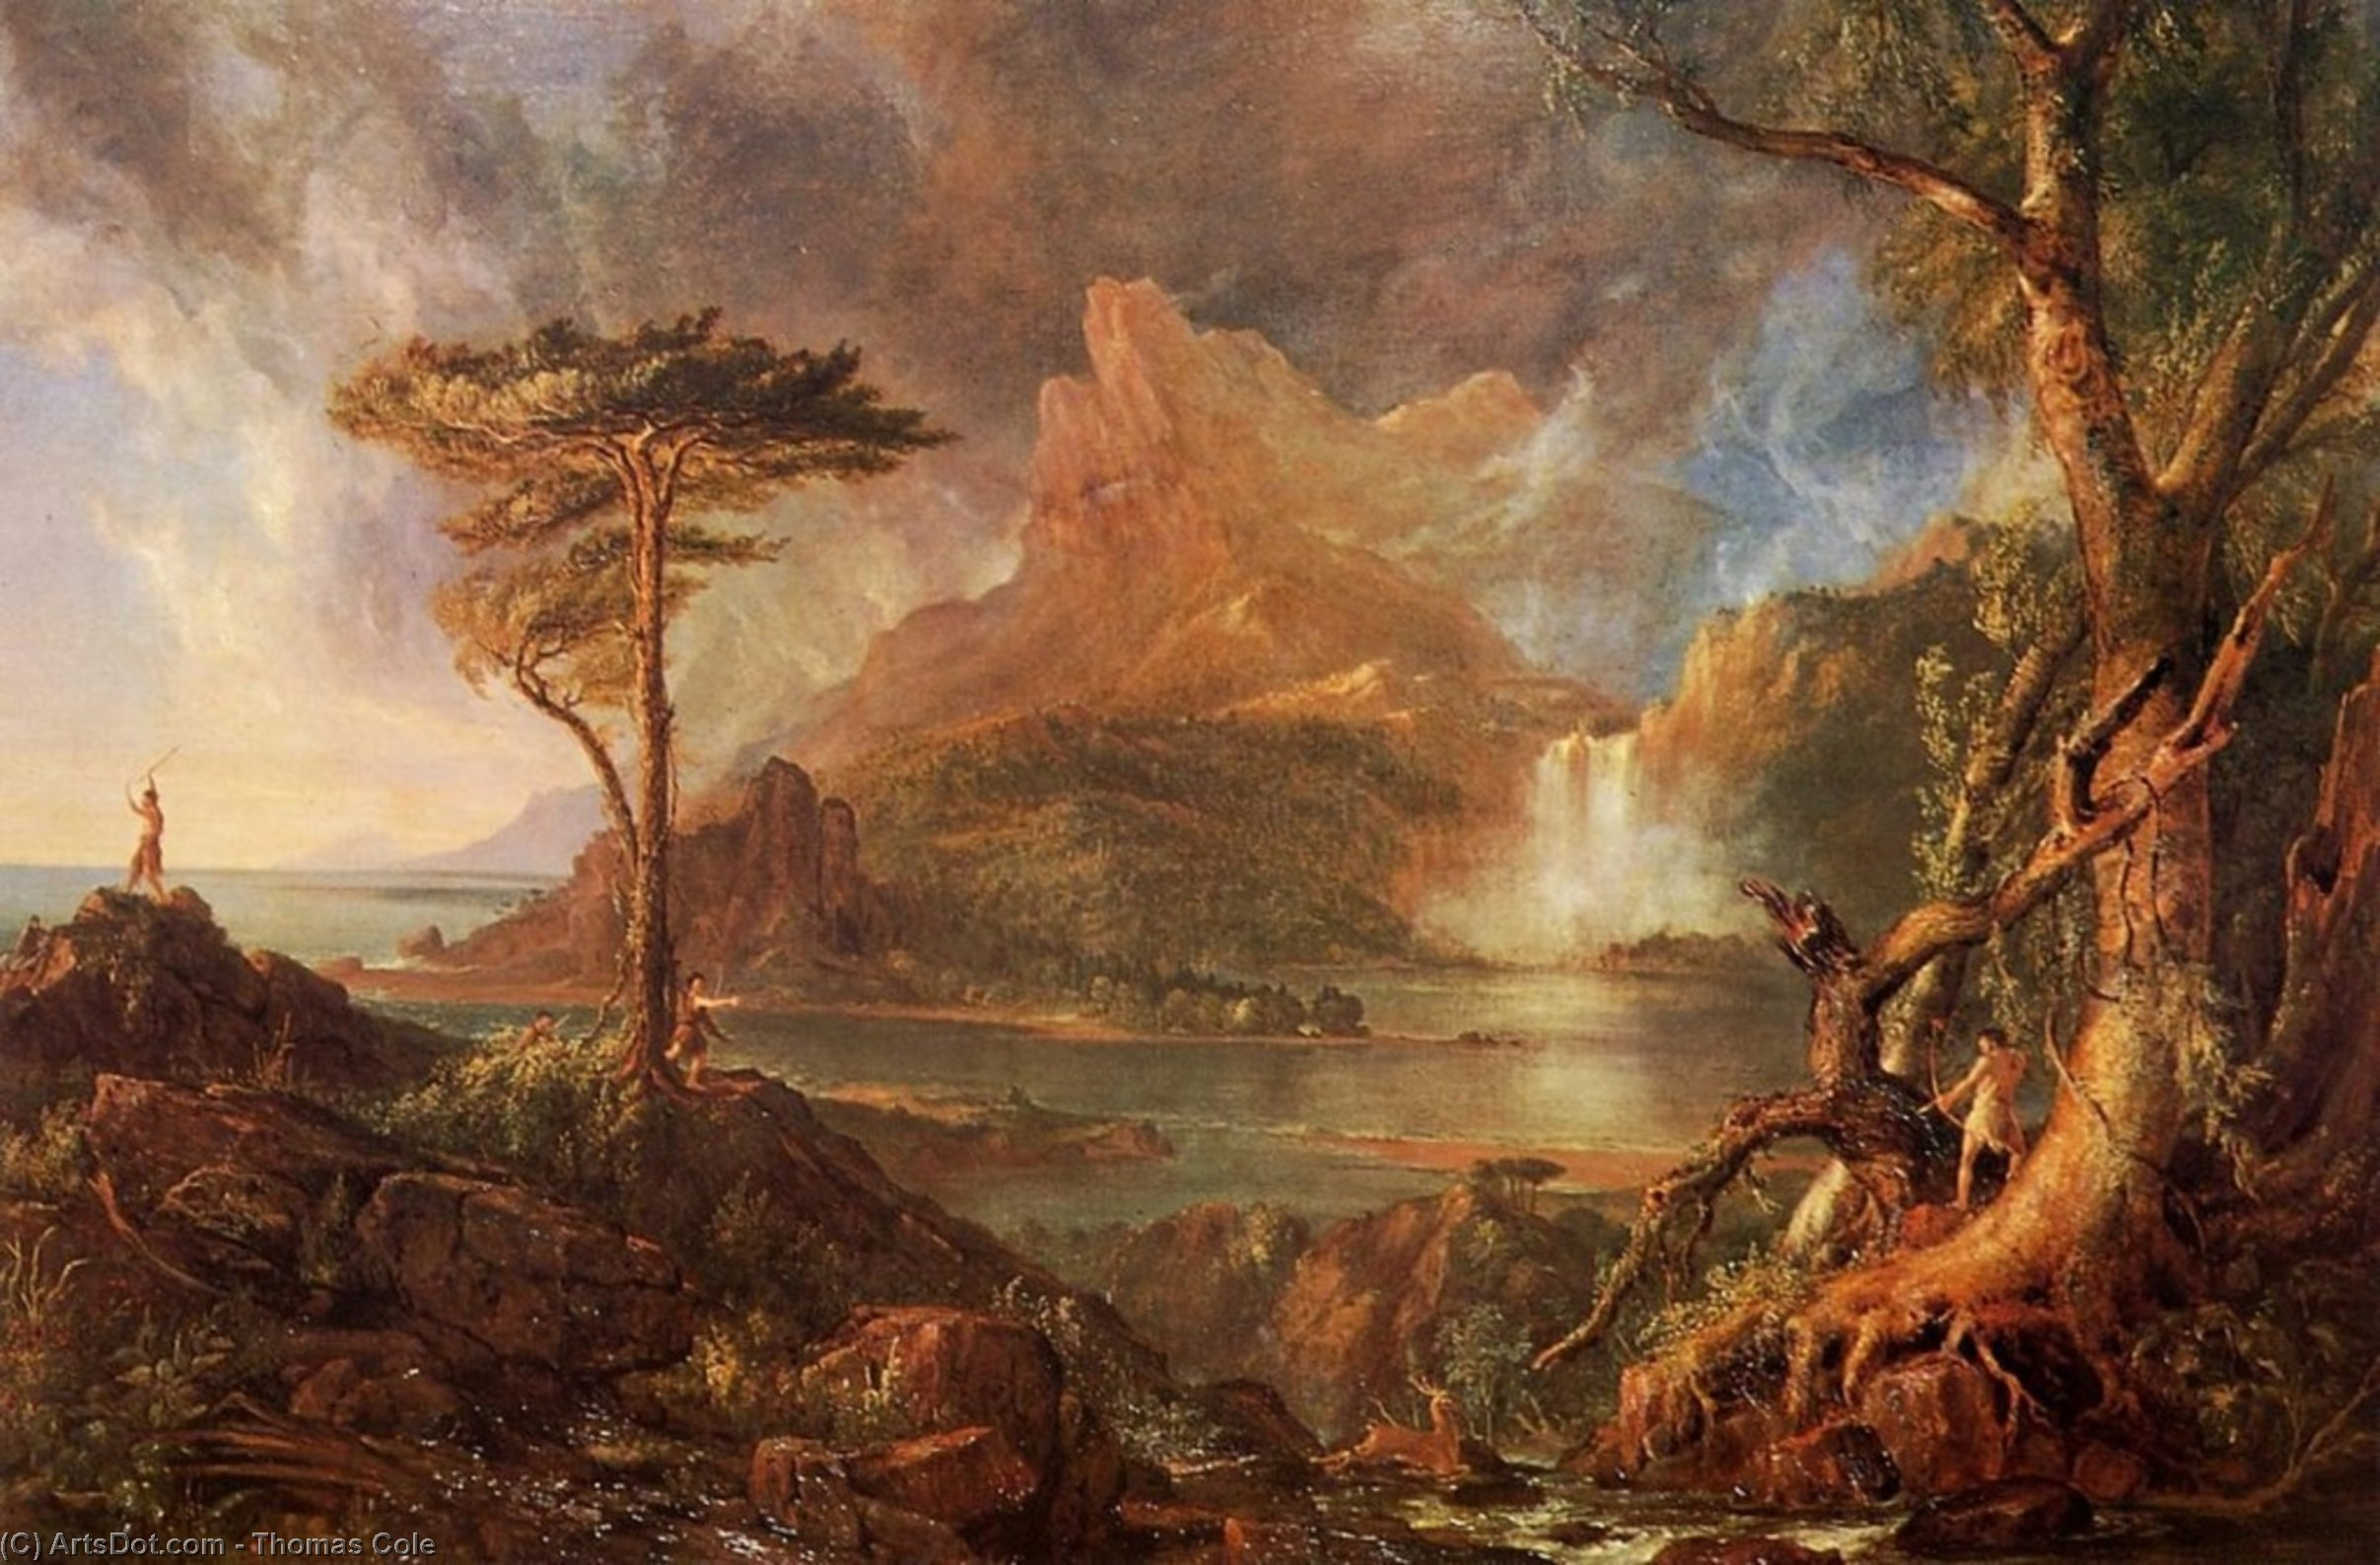 дикий Пейзаж , холст, масло по Thomas Cole (1801-1848, United Kingdom)